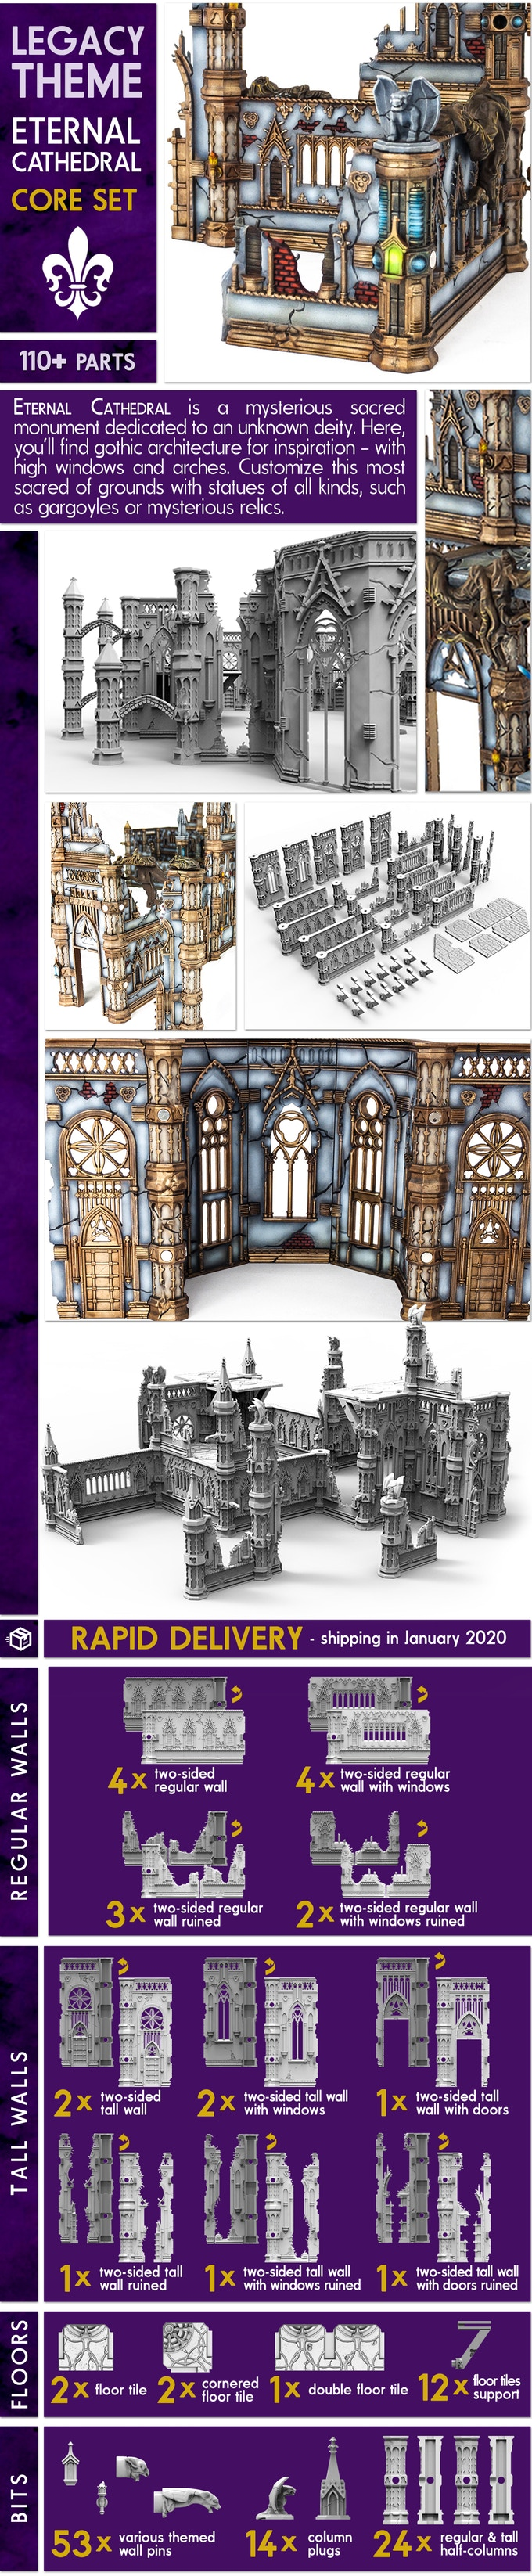 Eternal Cathedral - Archon Studio